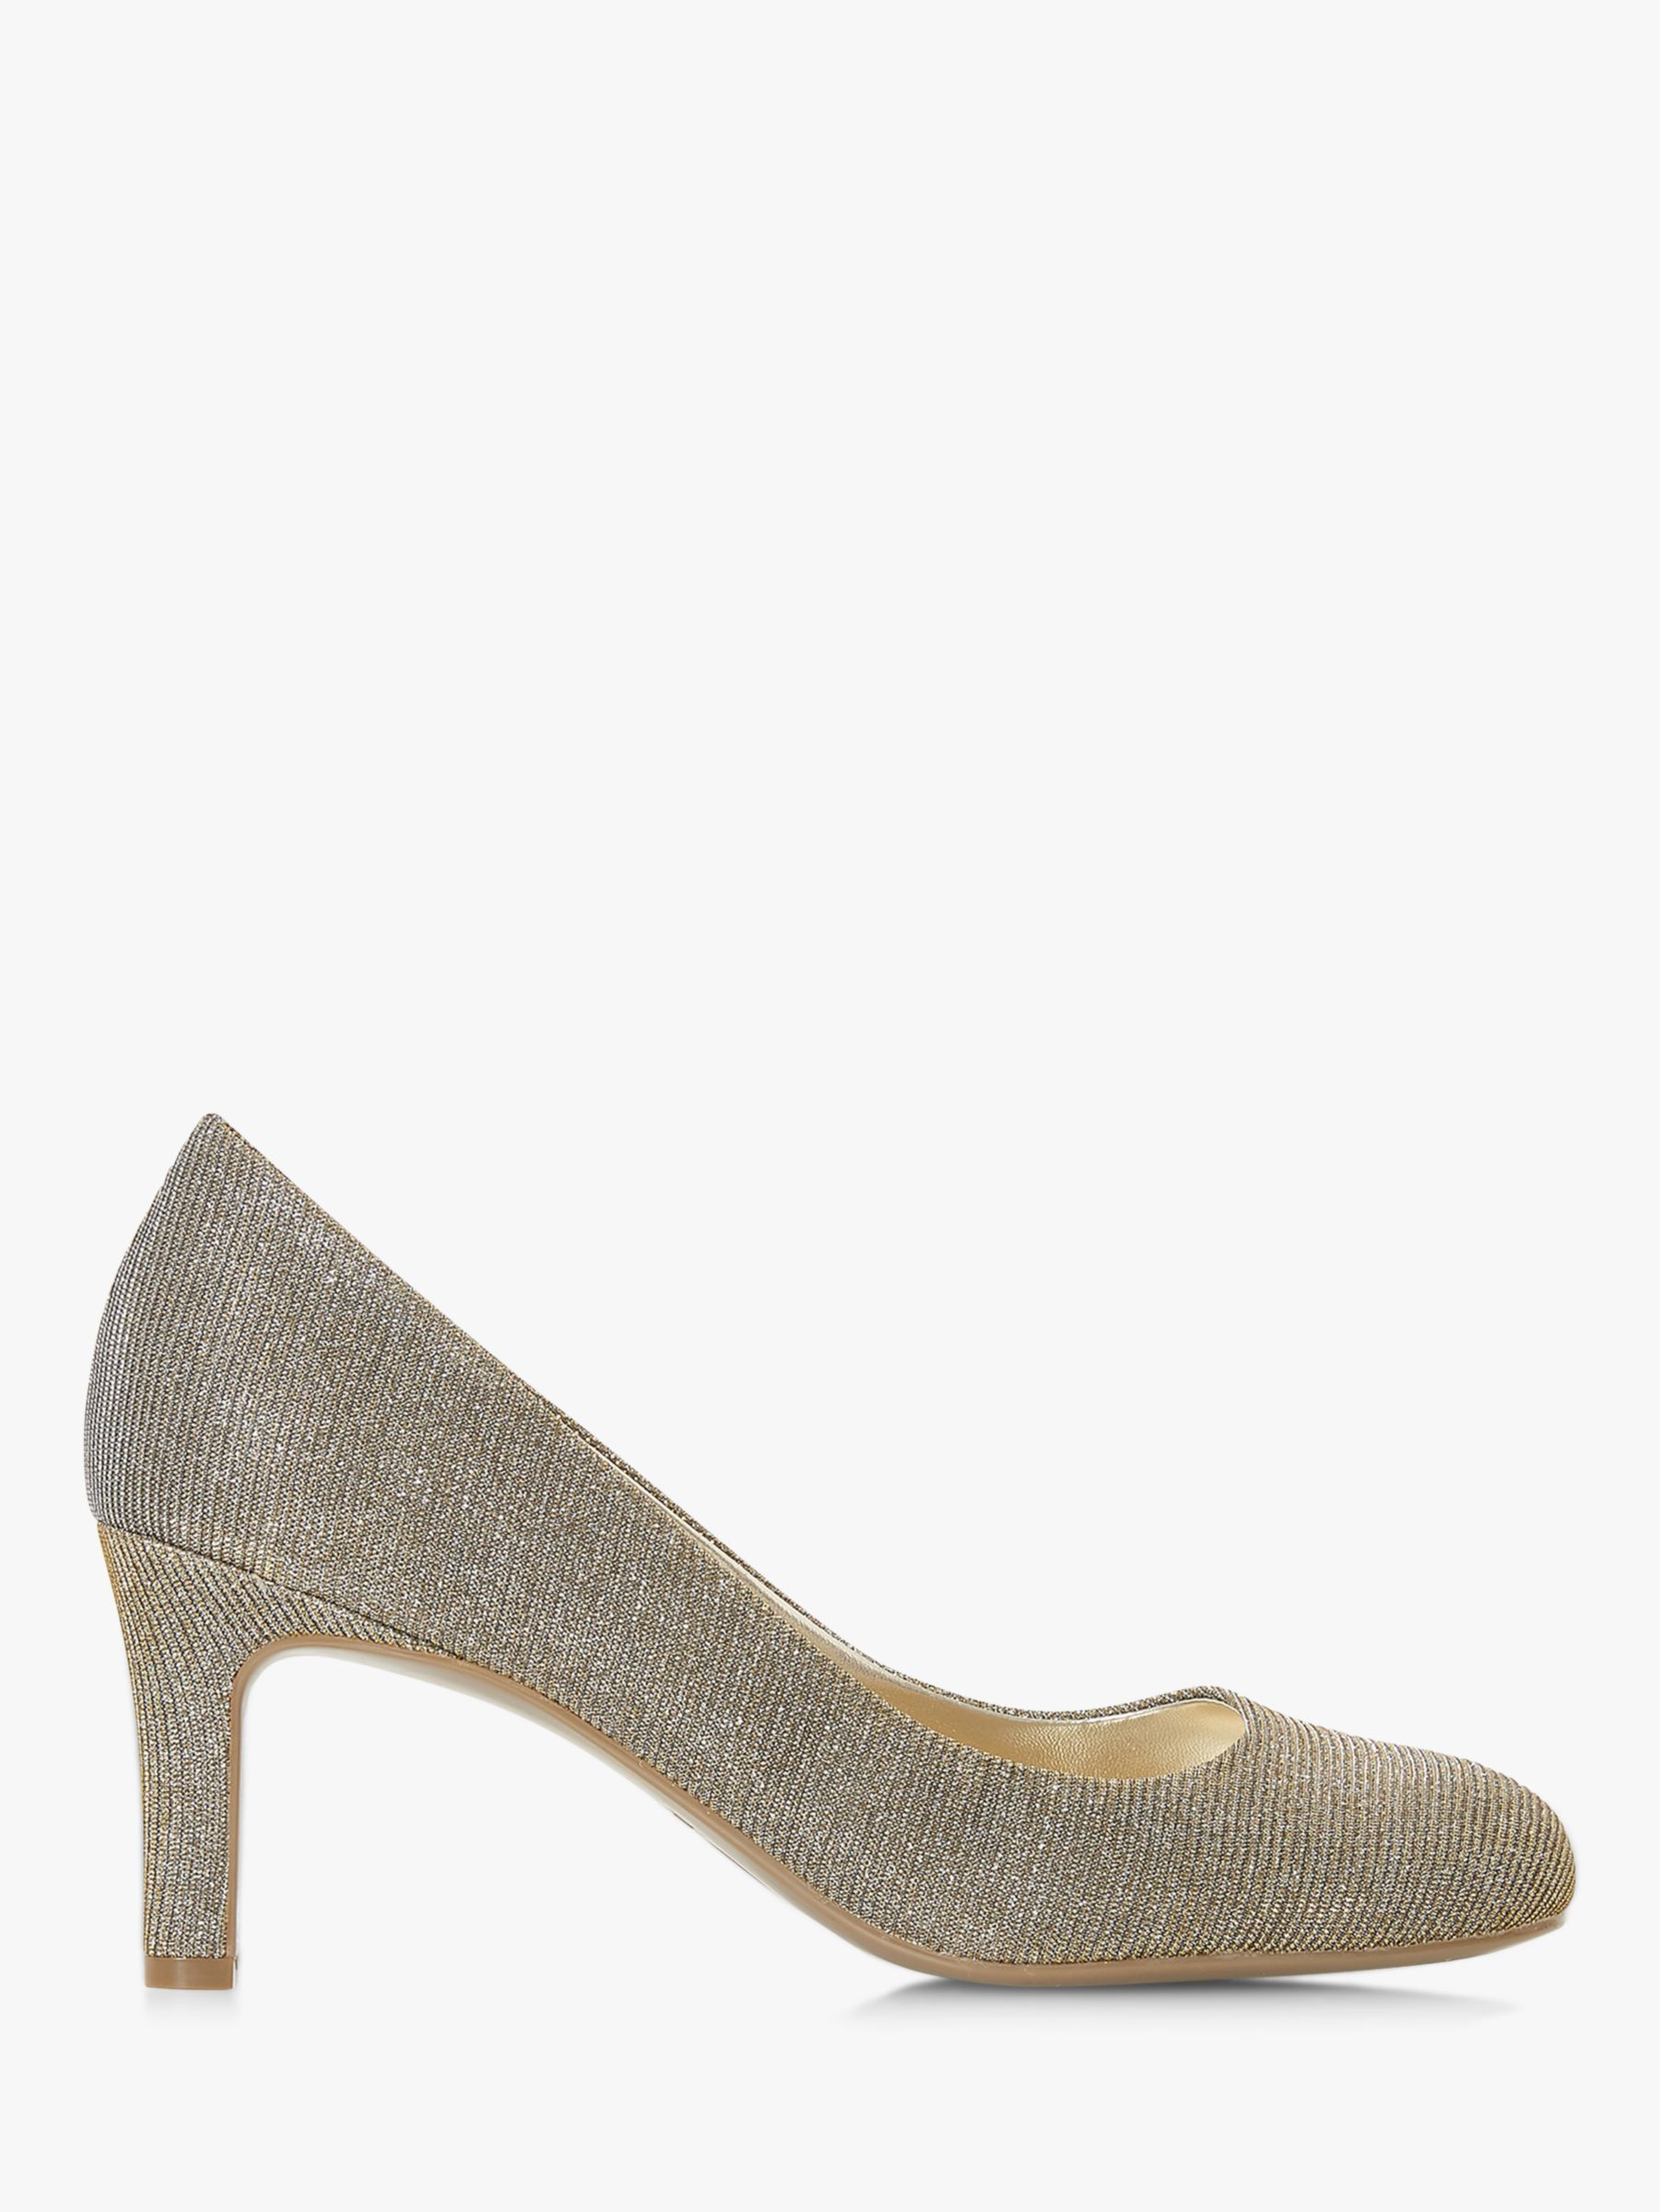 ff127b114fc792 Dune Amalei Mid Heel Court Shoes, Bronze at John Lewis & Partners